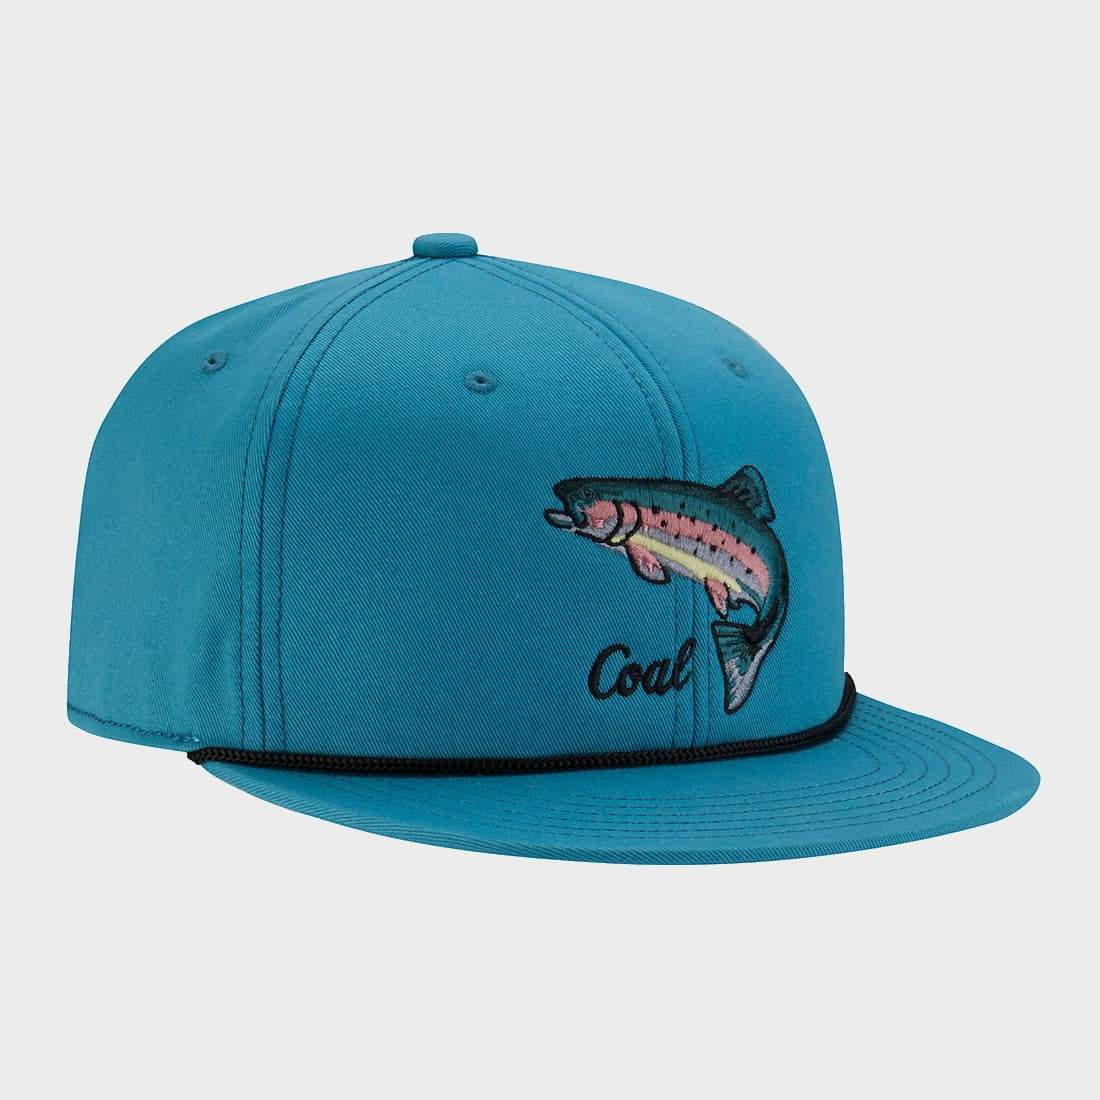 4a5ccd5e953ae Coal The Wilderness SP Hat - Gravitee Boardshop